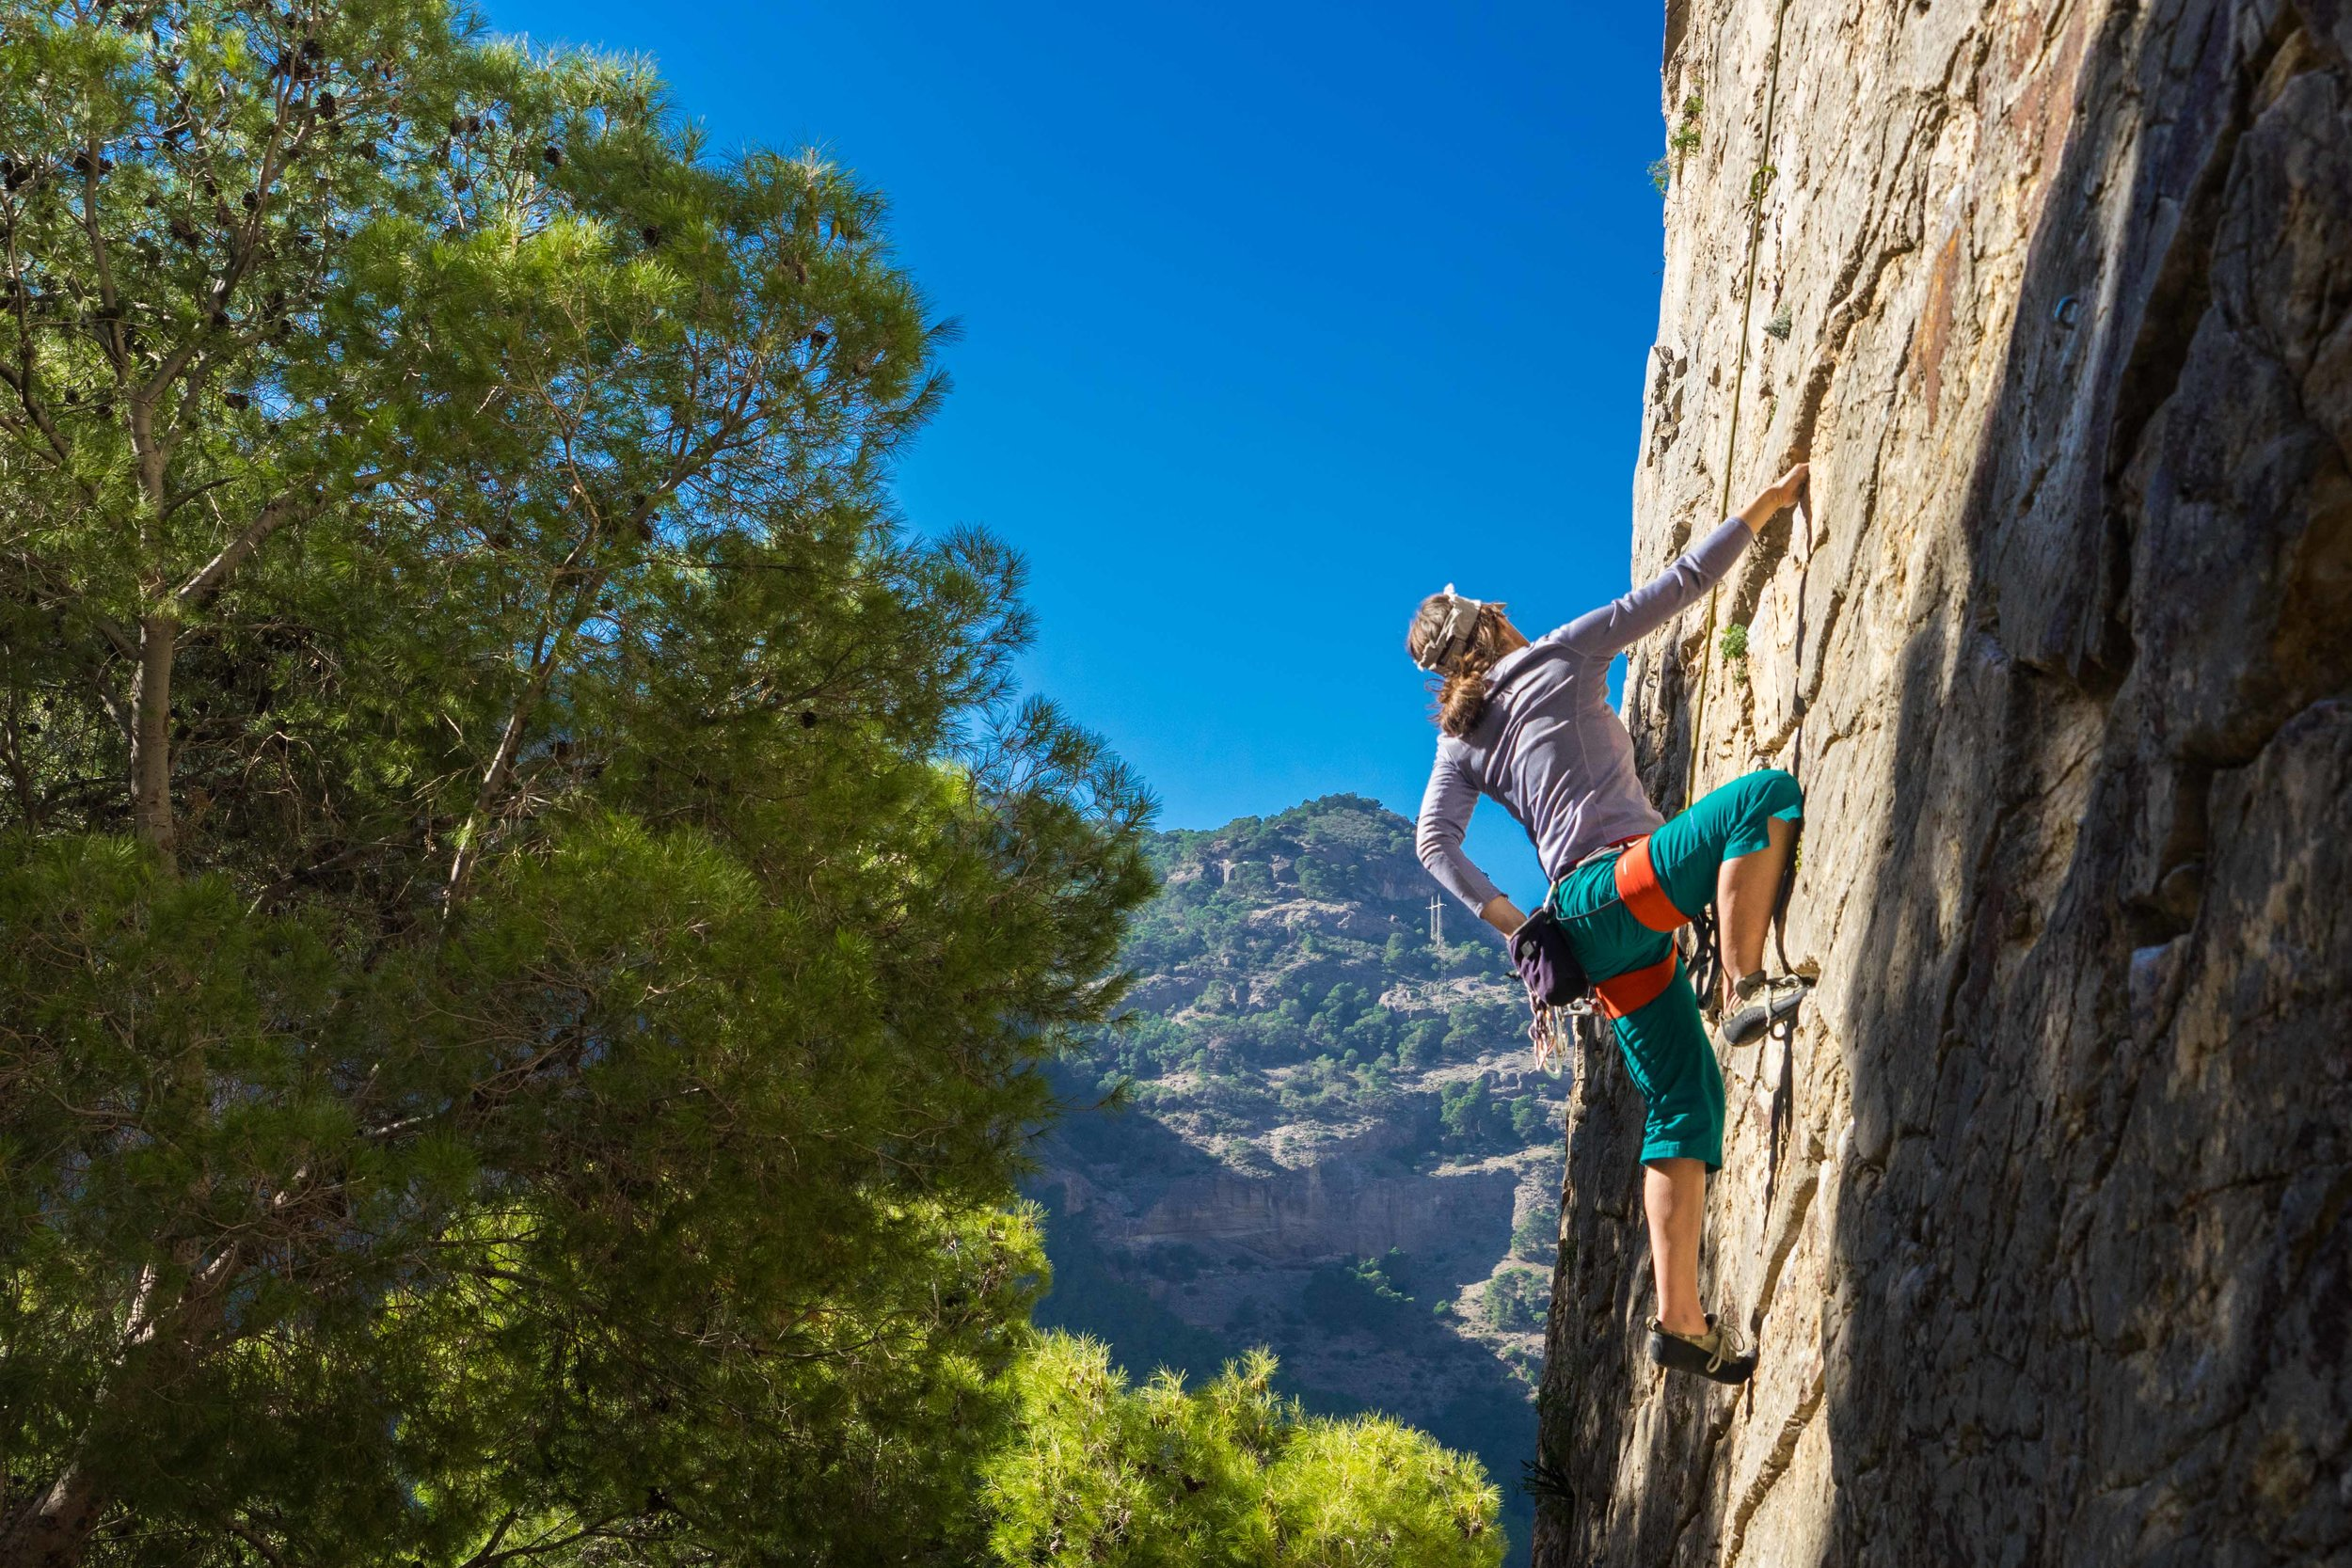 Rock climbing in El Chorro